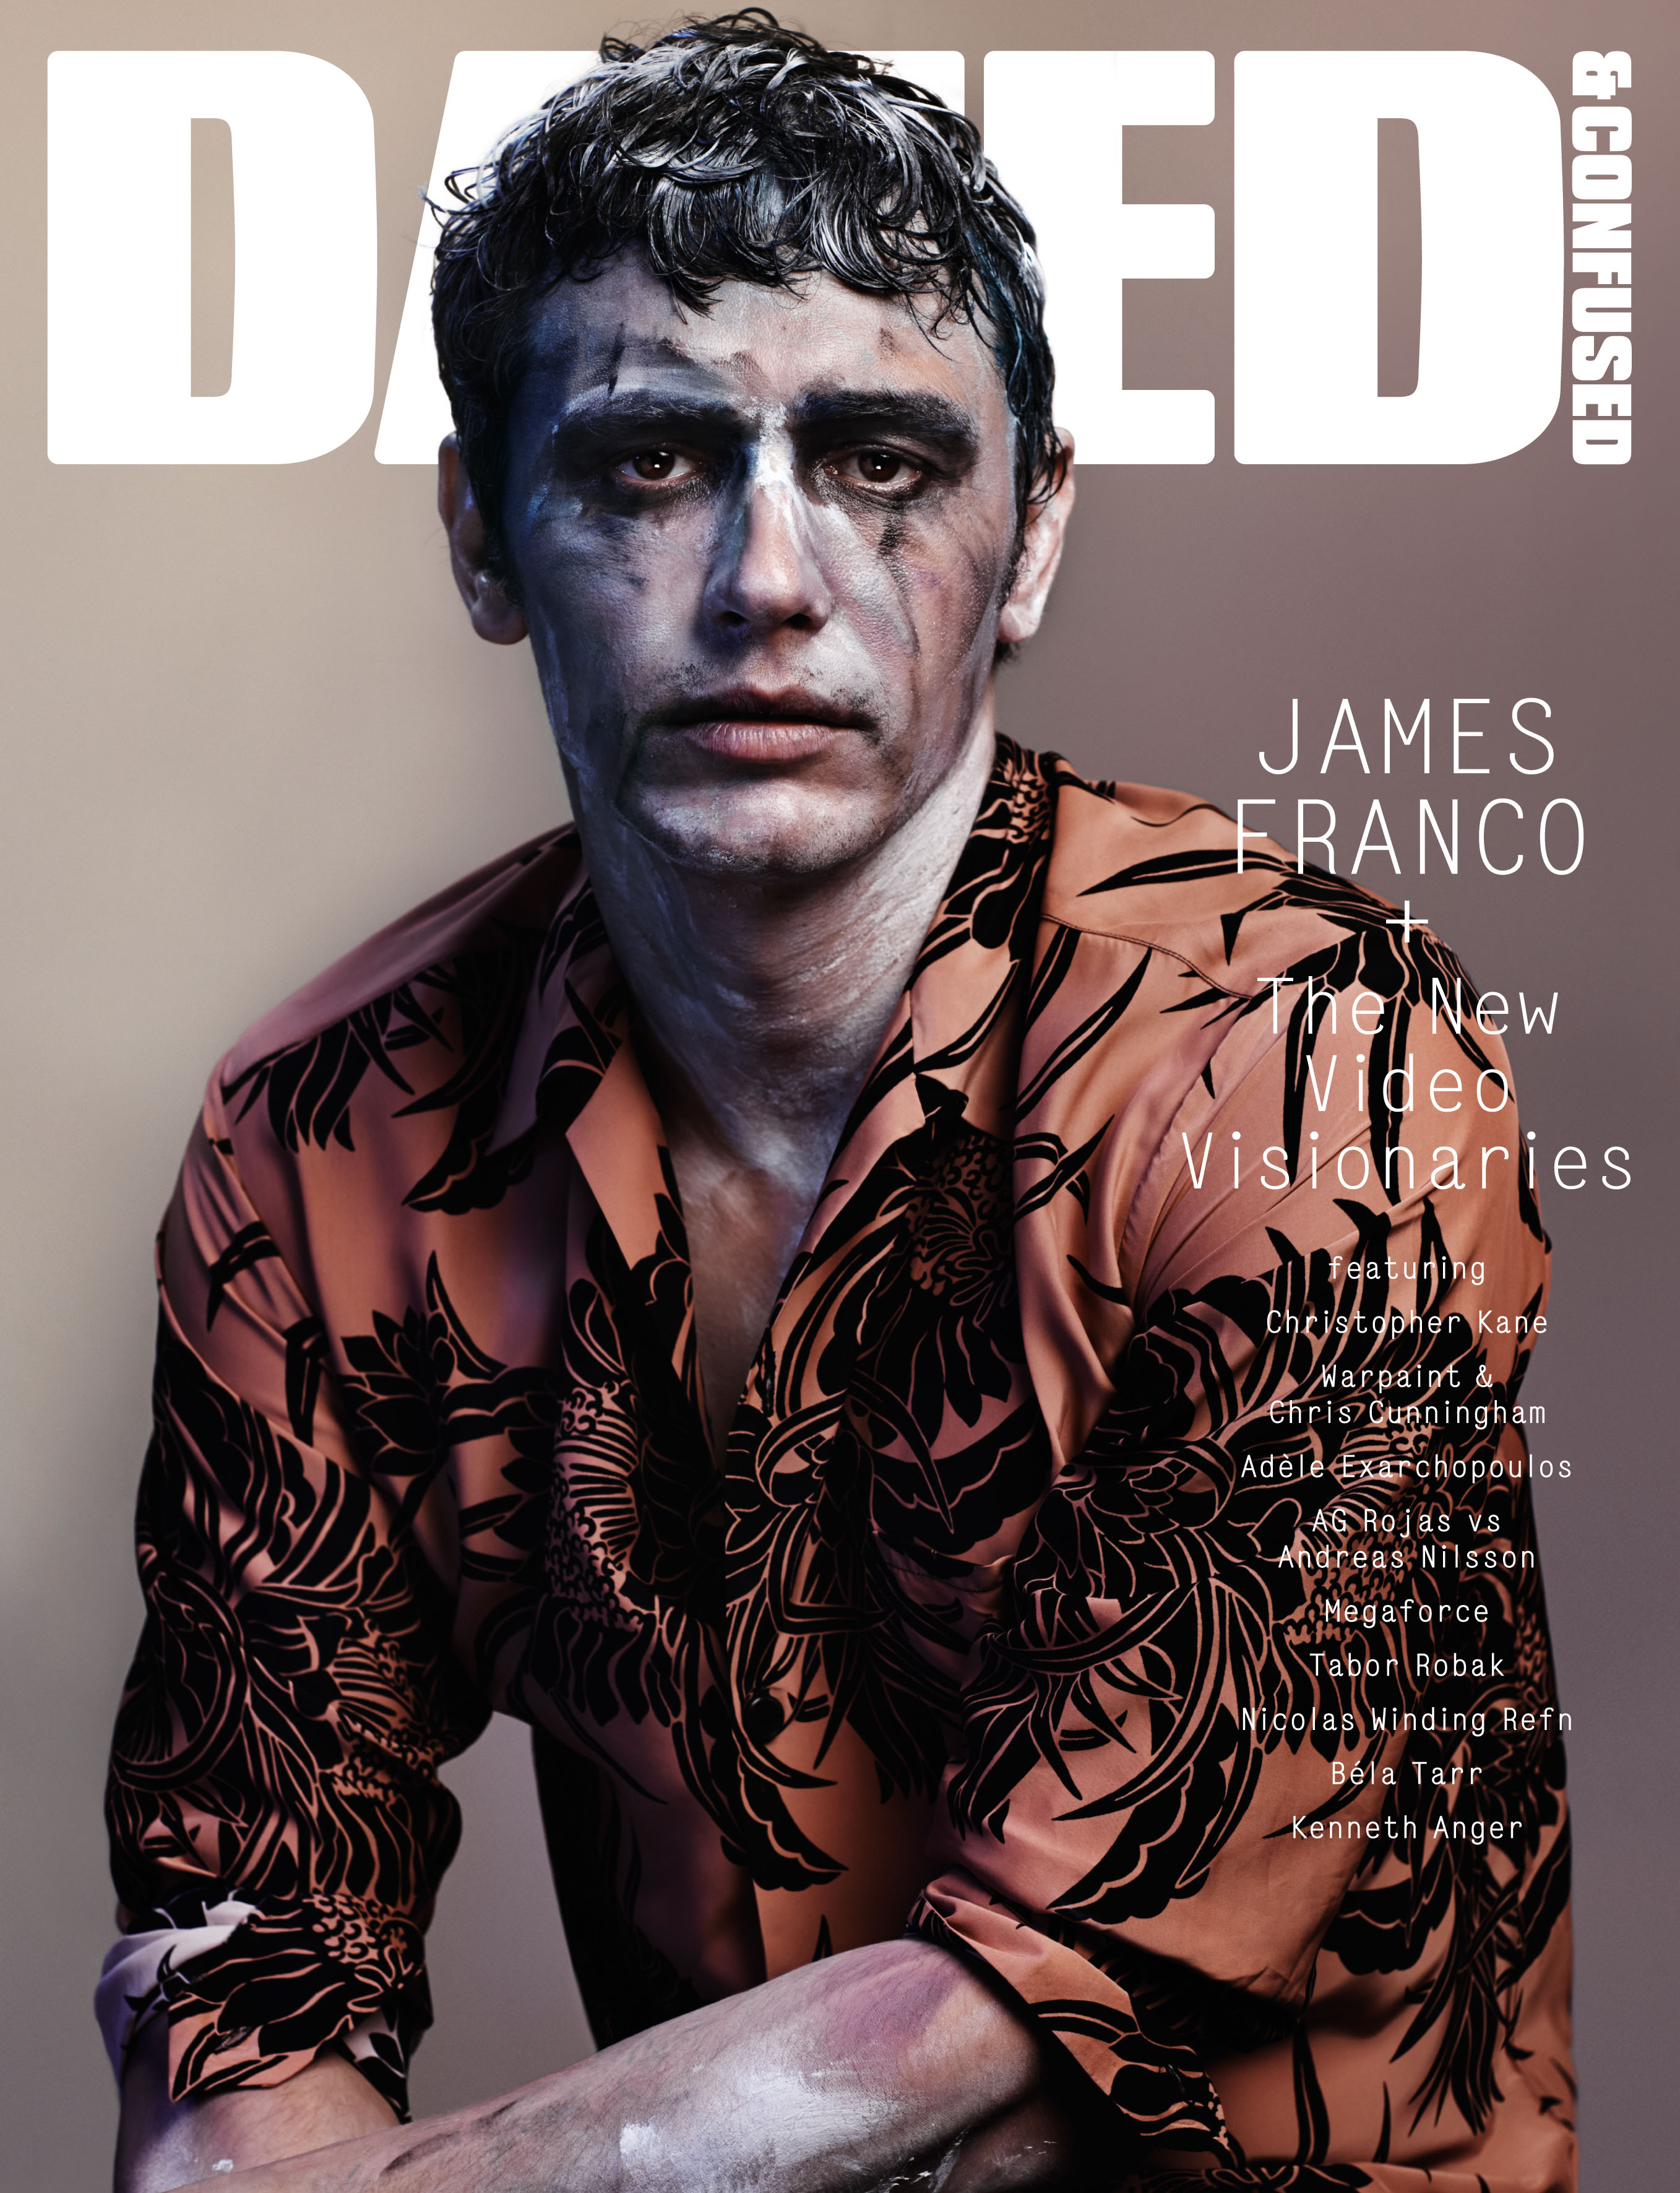 James Franco Covers the December Issue of Dazed & Confused